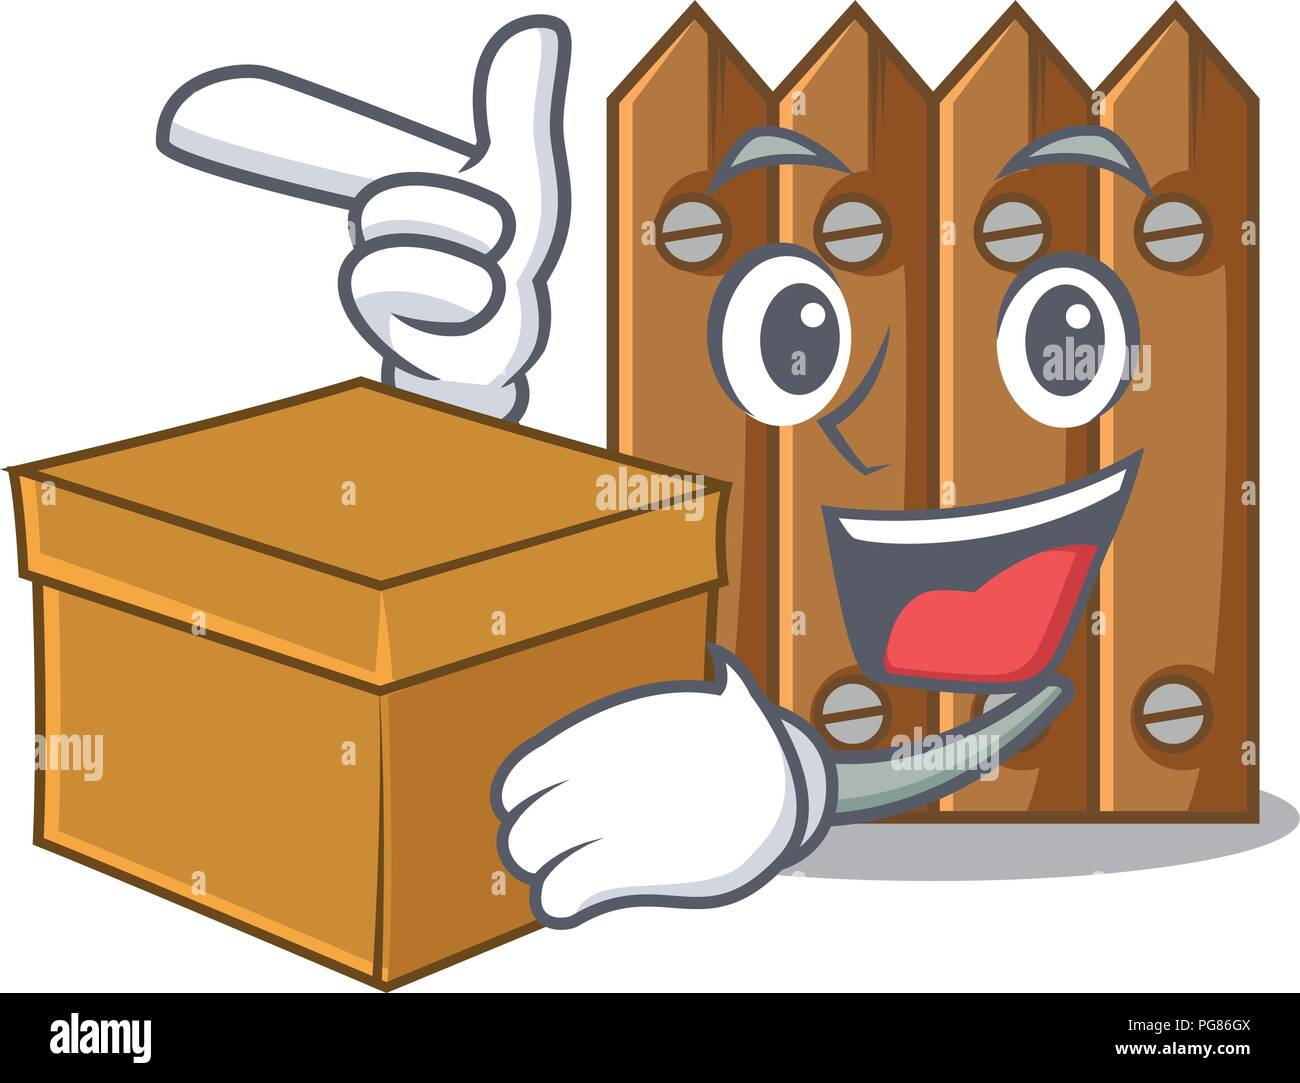 With box character close up on wooden fence door - Stock Vector